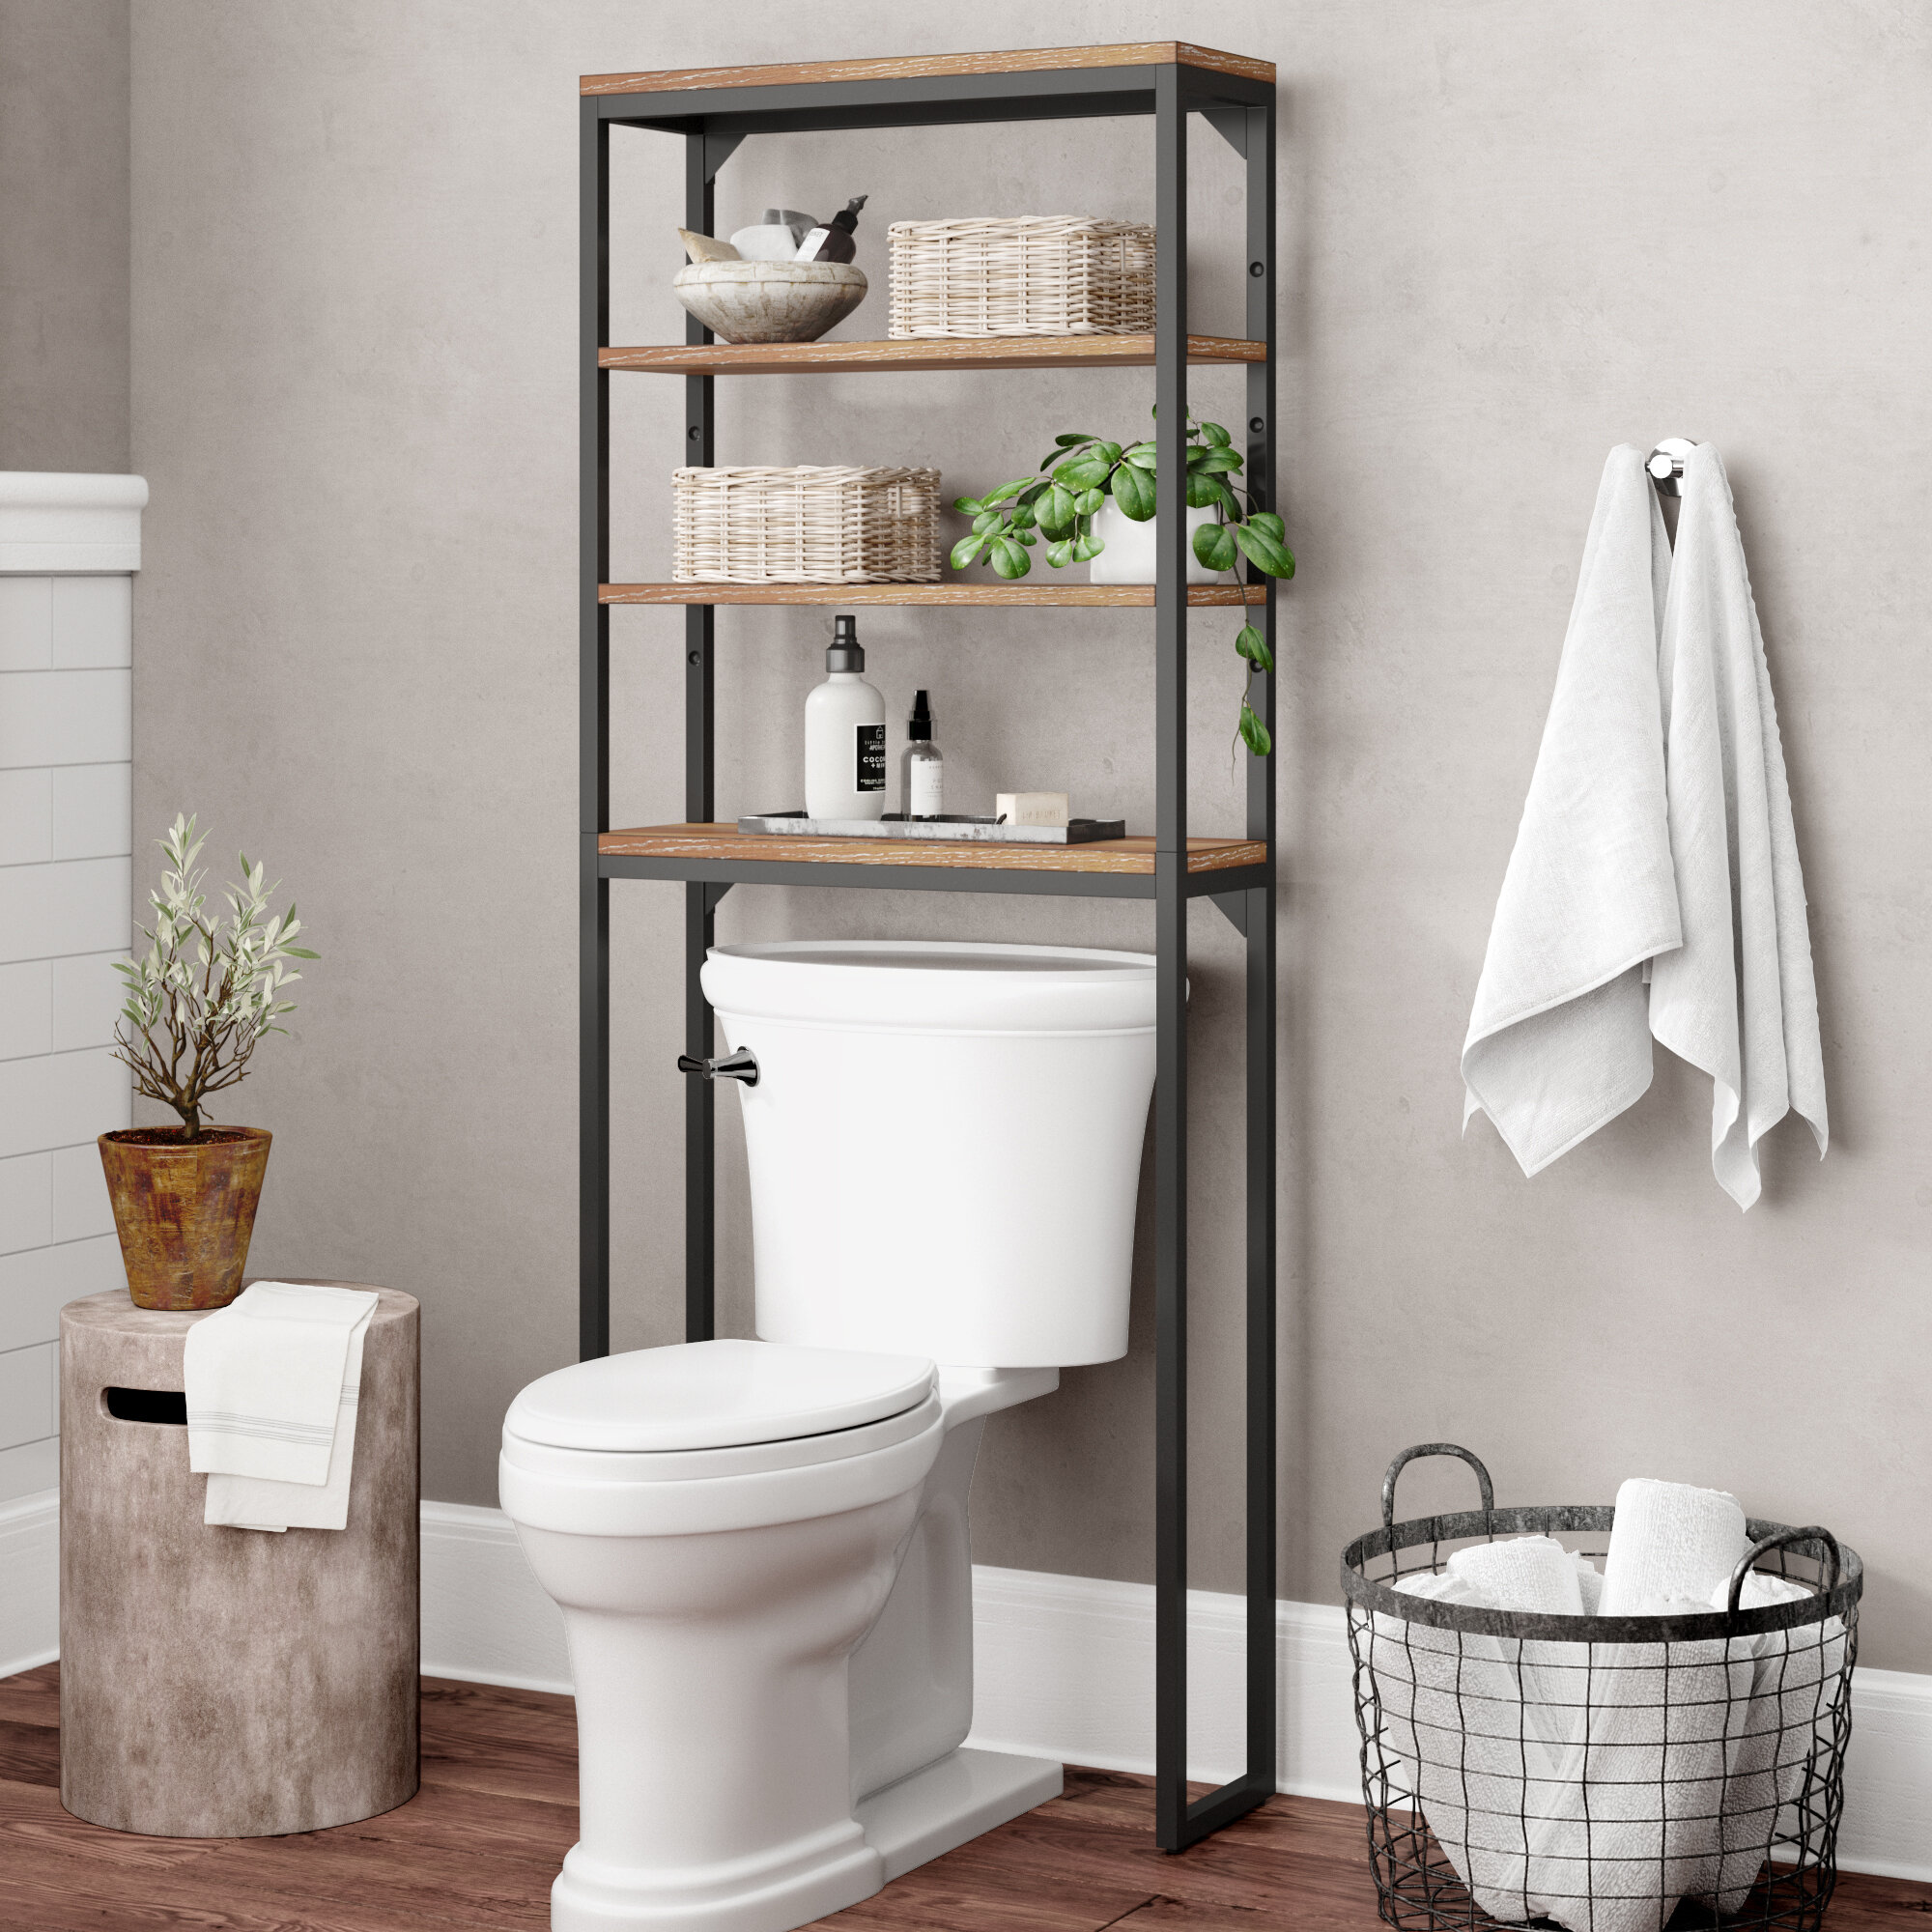 17 Stories Eckles 25 W X 64 H Over The Toilet Storage Reviews